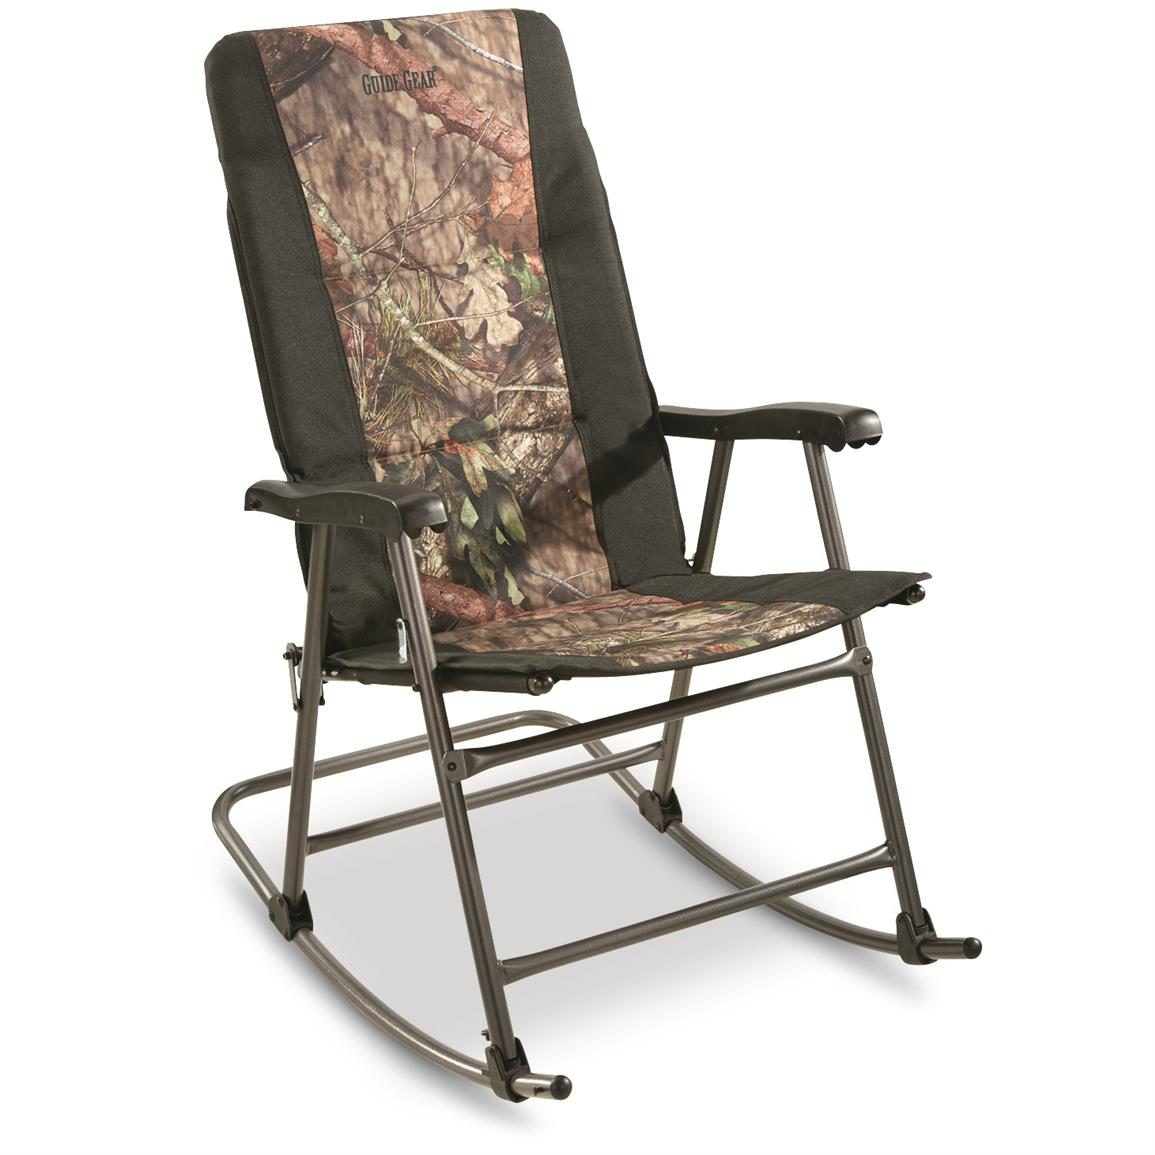 Campfire Chairs Guide Gear Oversized Rocking Camp Chair 500 Lb Capacity